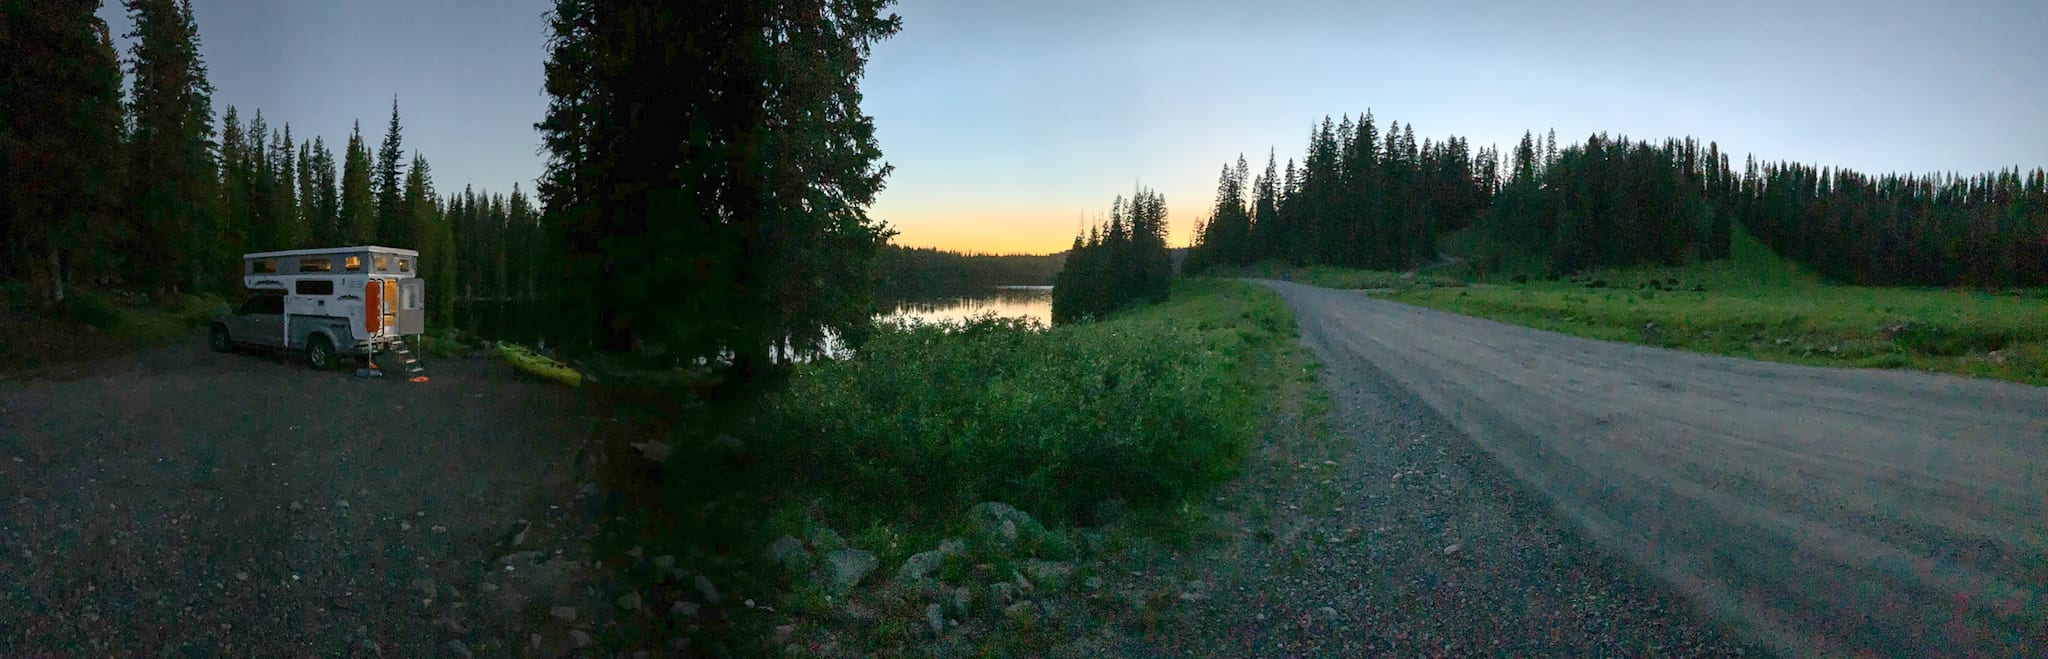 Dusk at Eggleston Lake Campground Grand Mesa National Forest Colorado